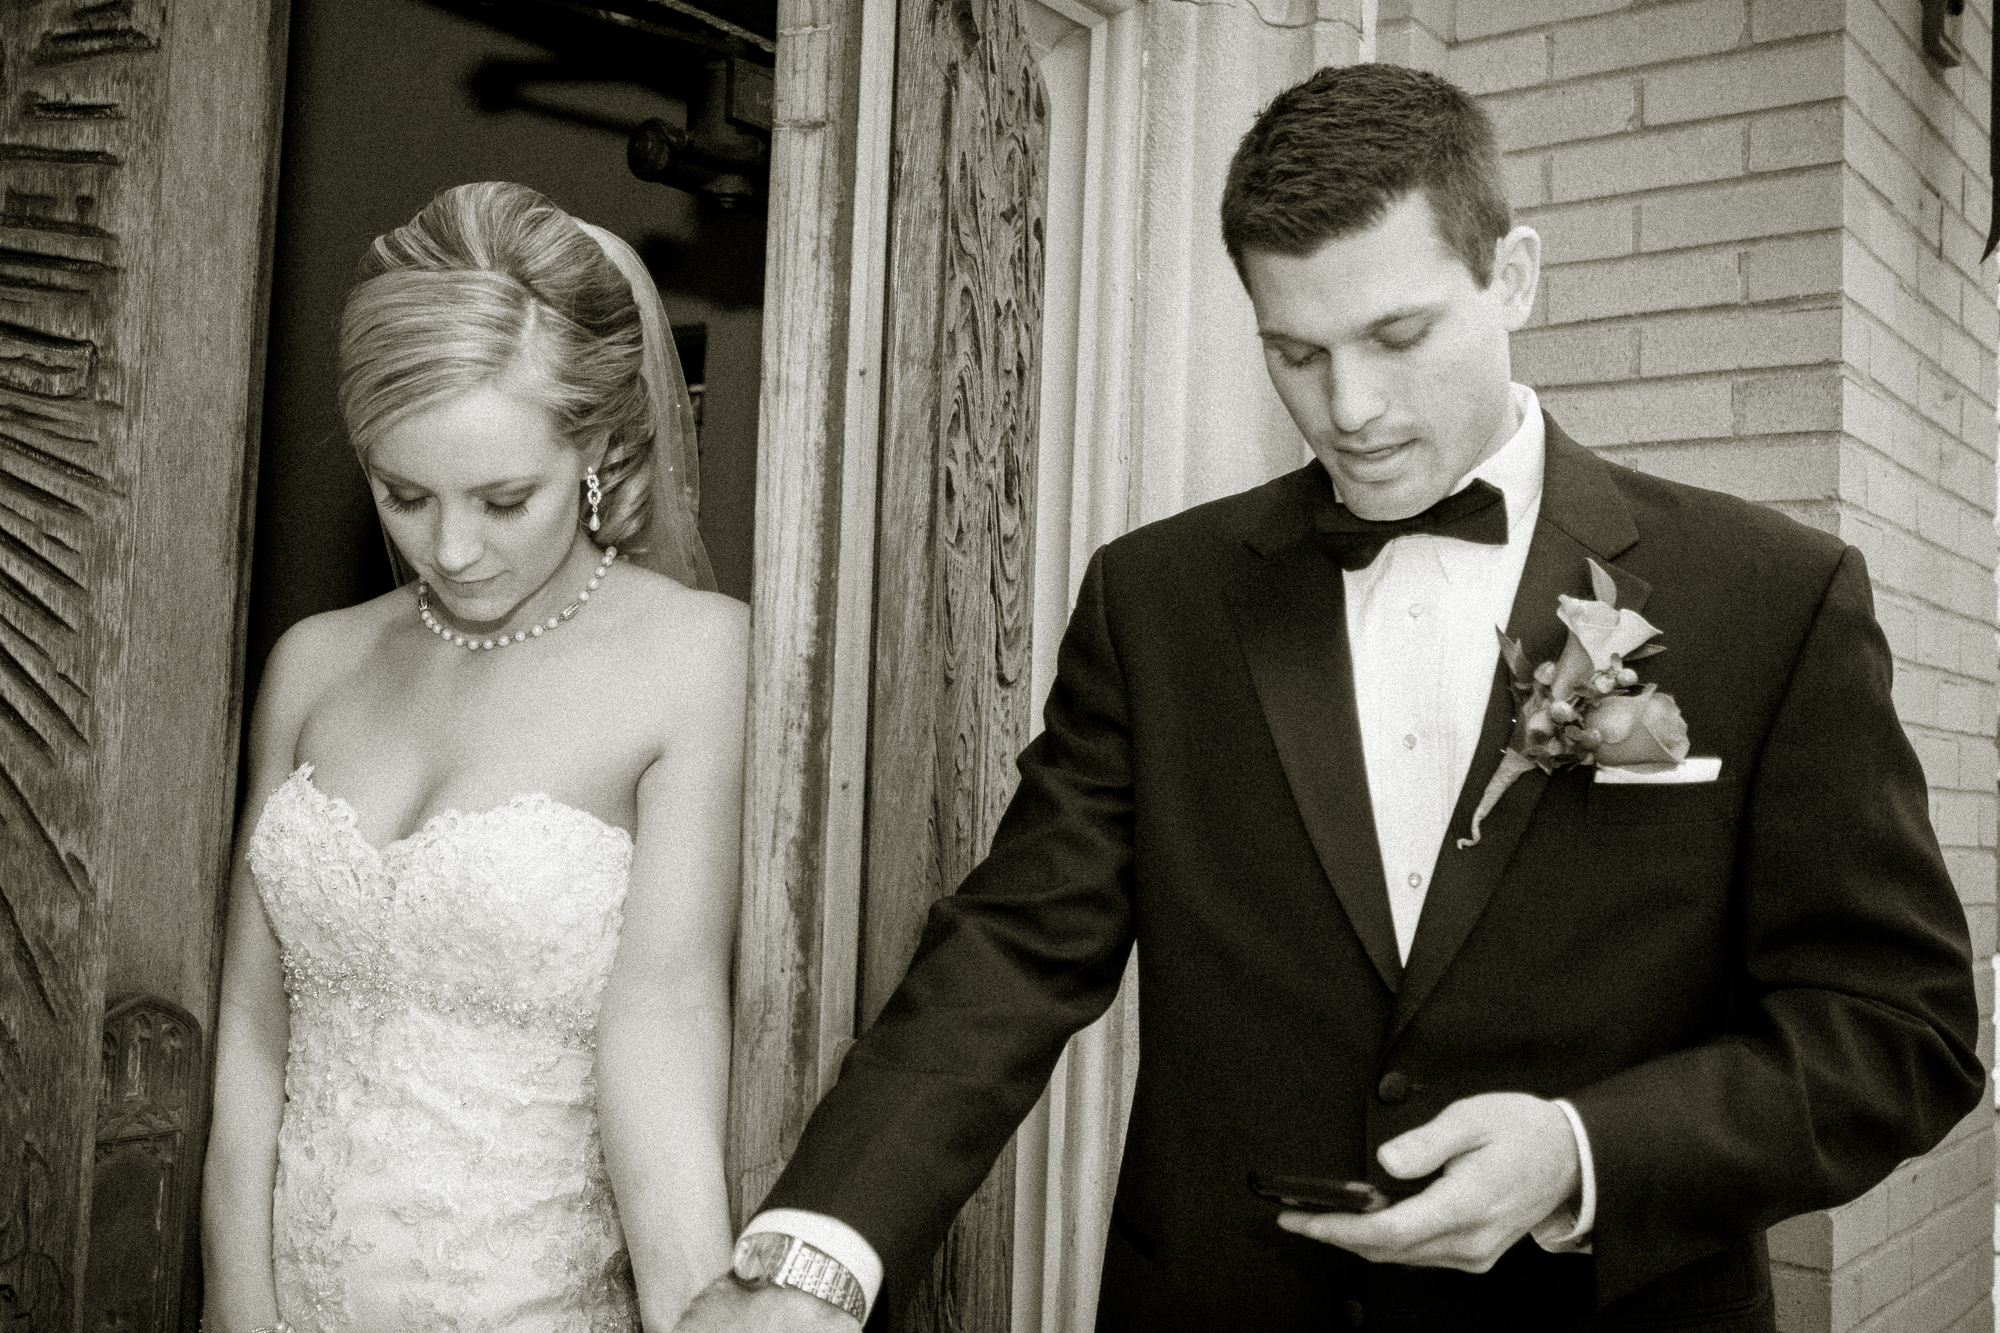 A short prayer before ceremony time. The opened door assures they won't see each other until walking down the aisle.